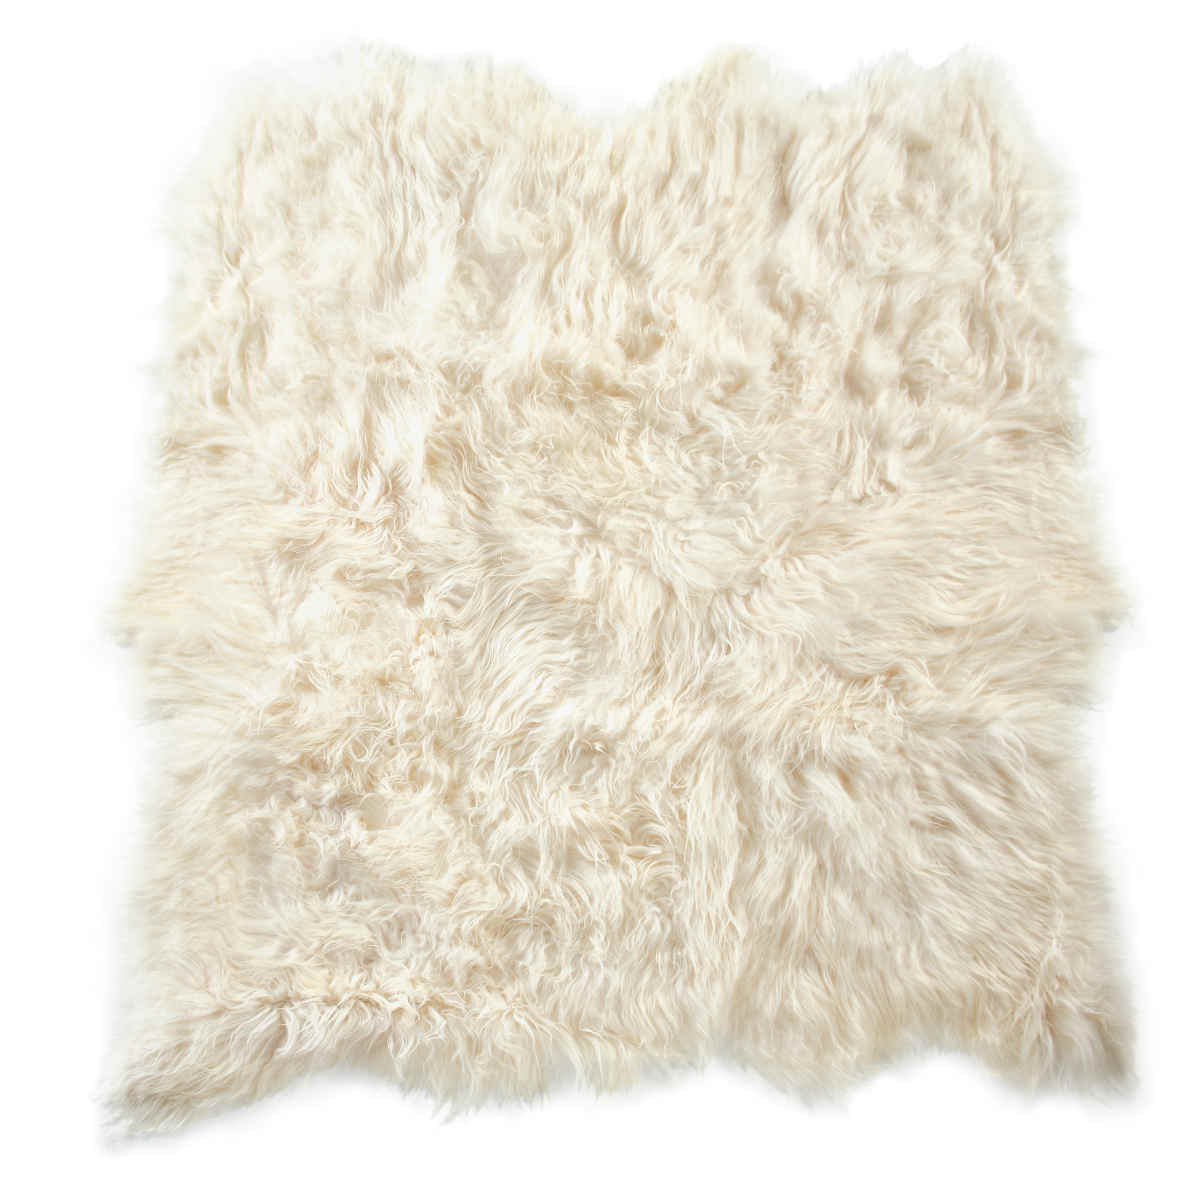 Fibre by auskin artic icelandic sheepskin six pelt rug for Fur rugs